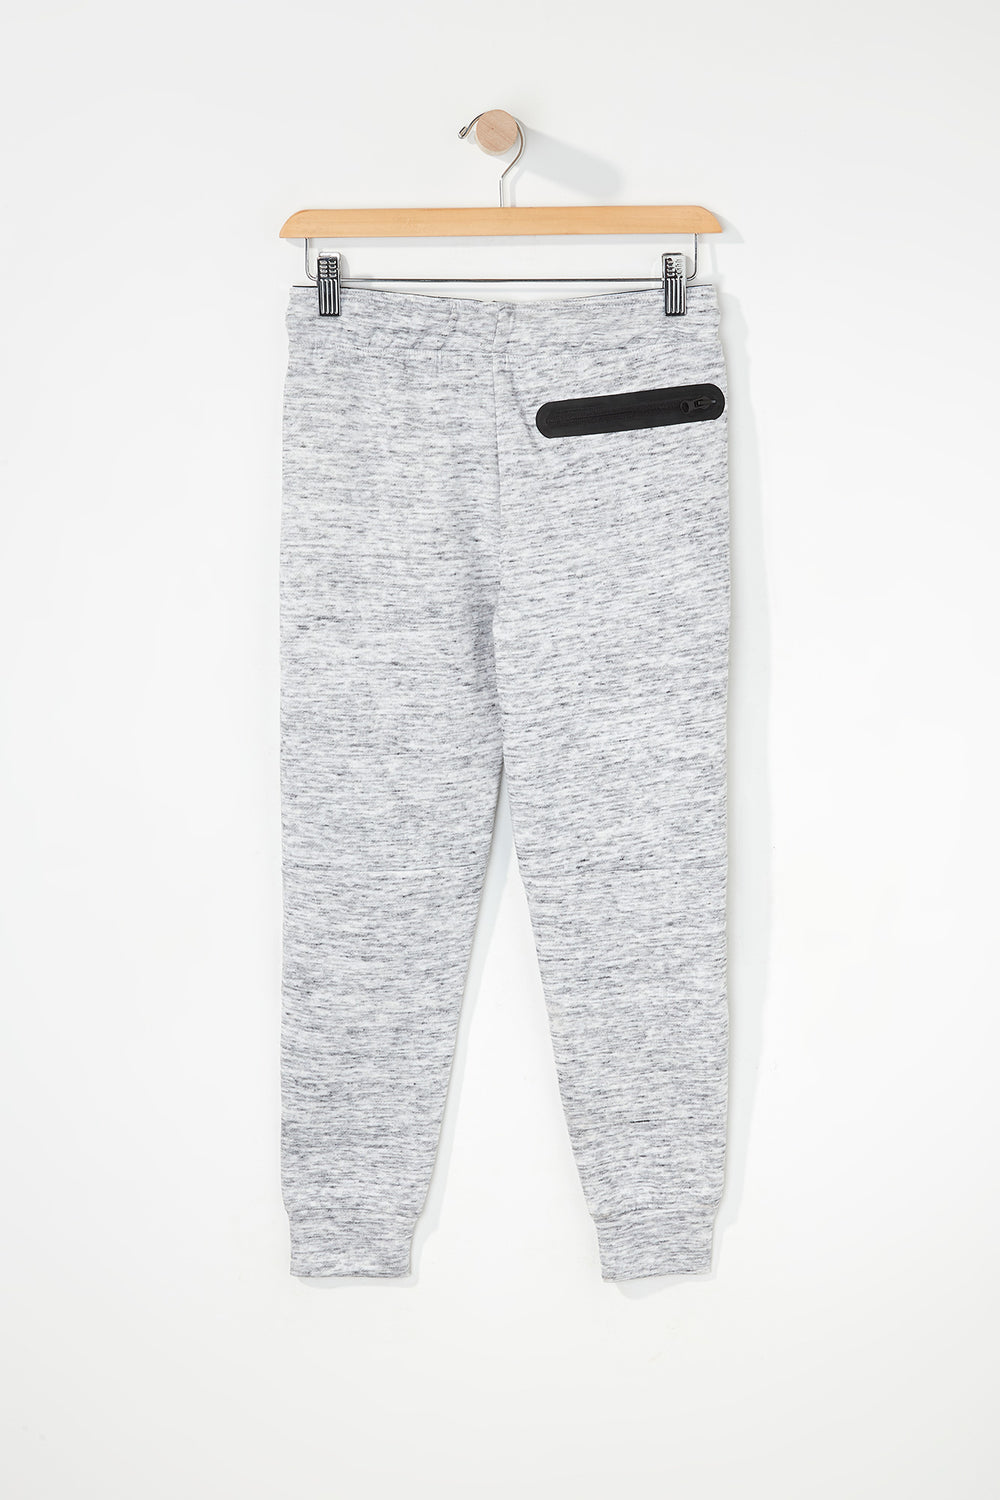 West49 Boys Zip Jogger Heather Grey